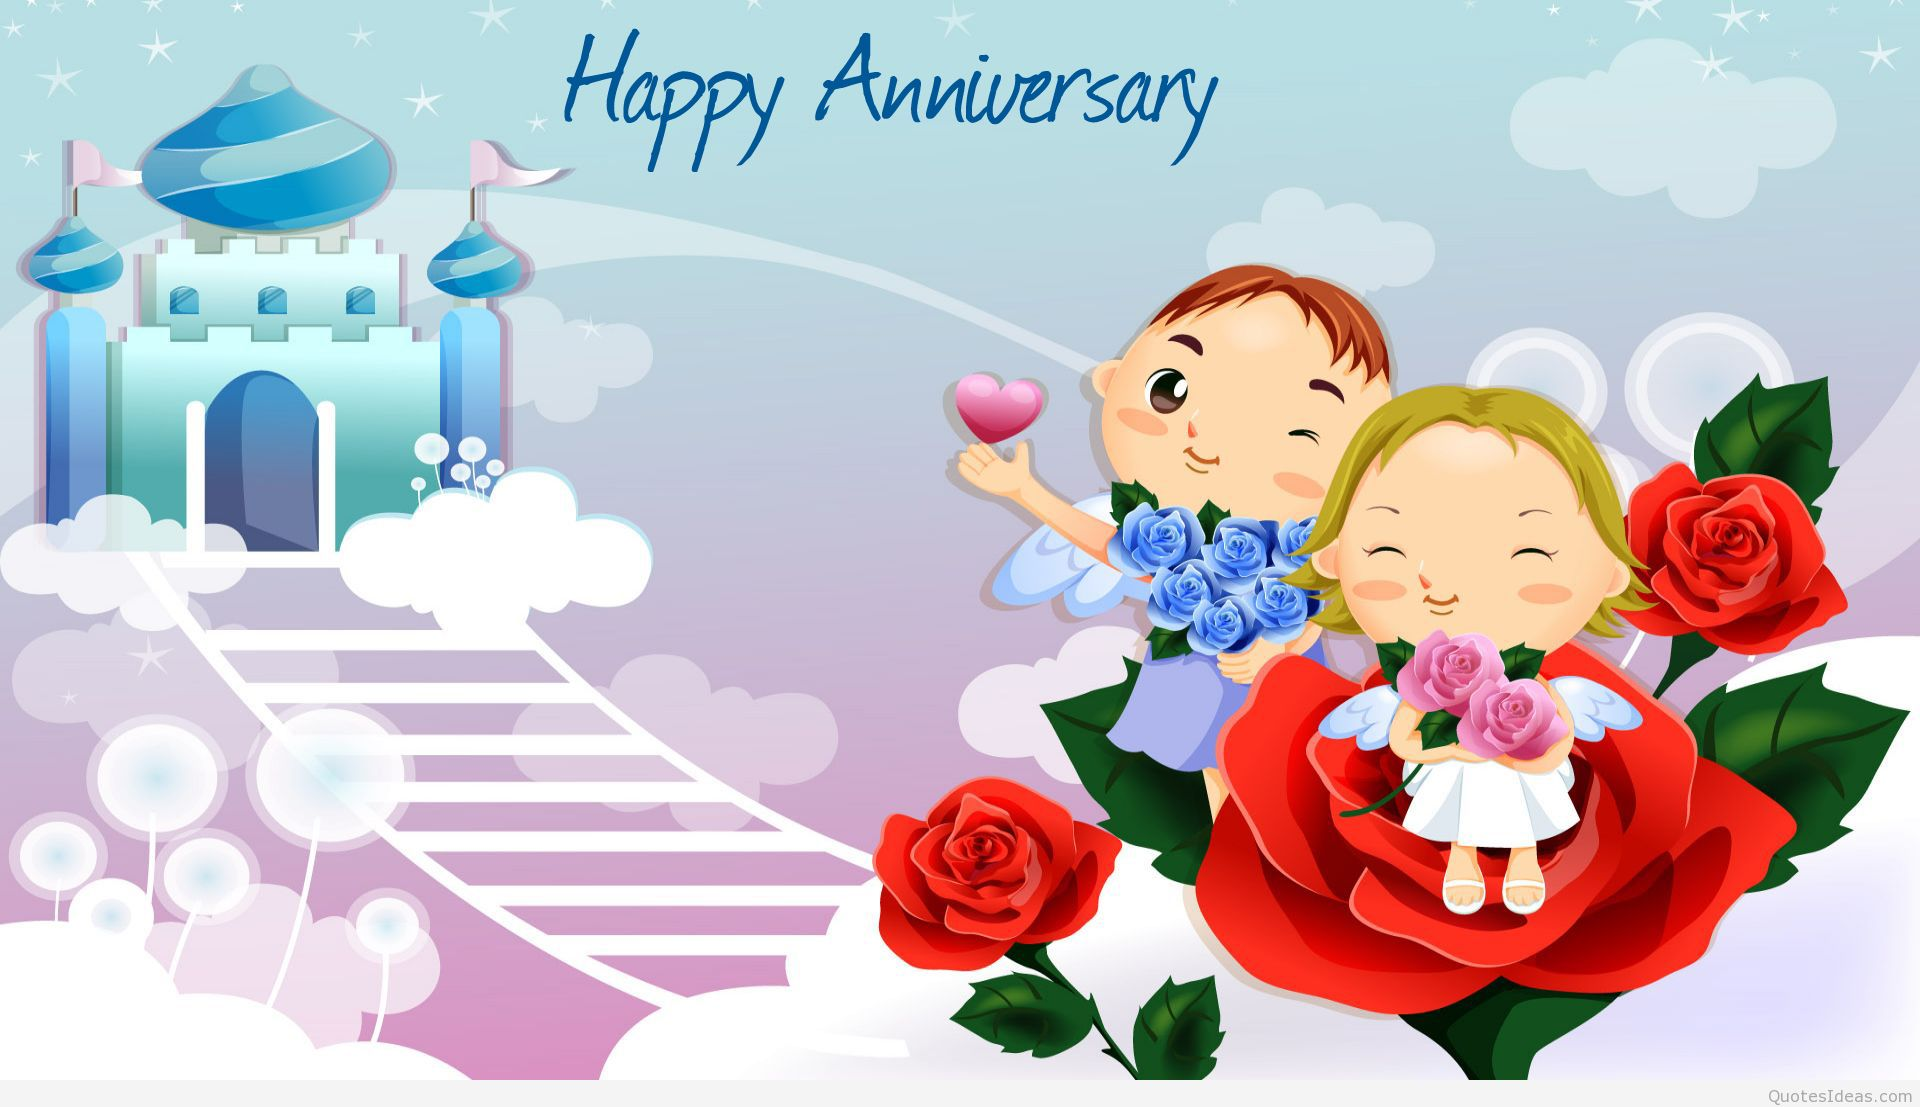 Happy Anniversary Images Wallpapers Download - iEnglish Status